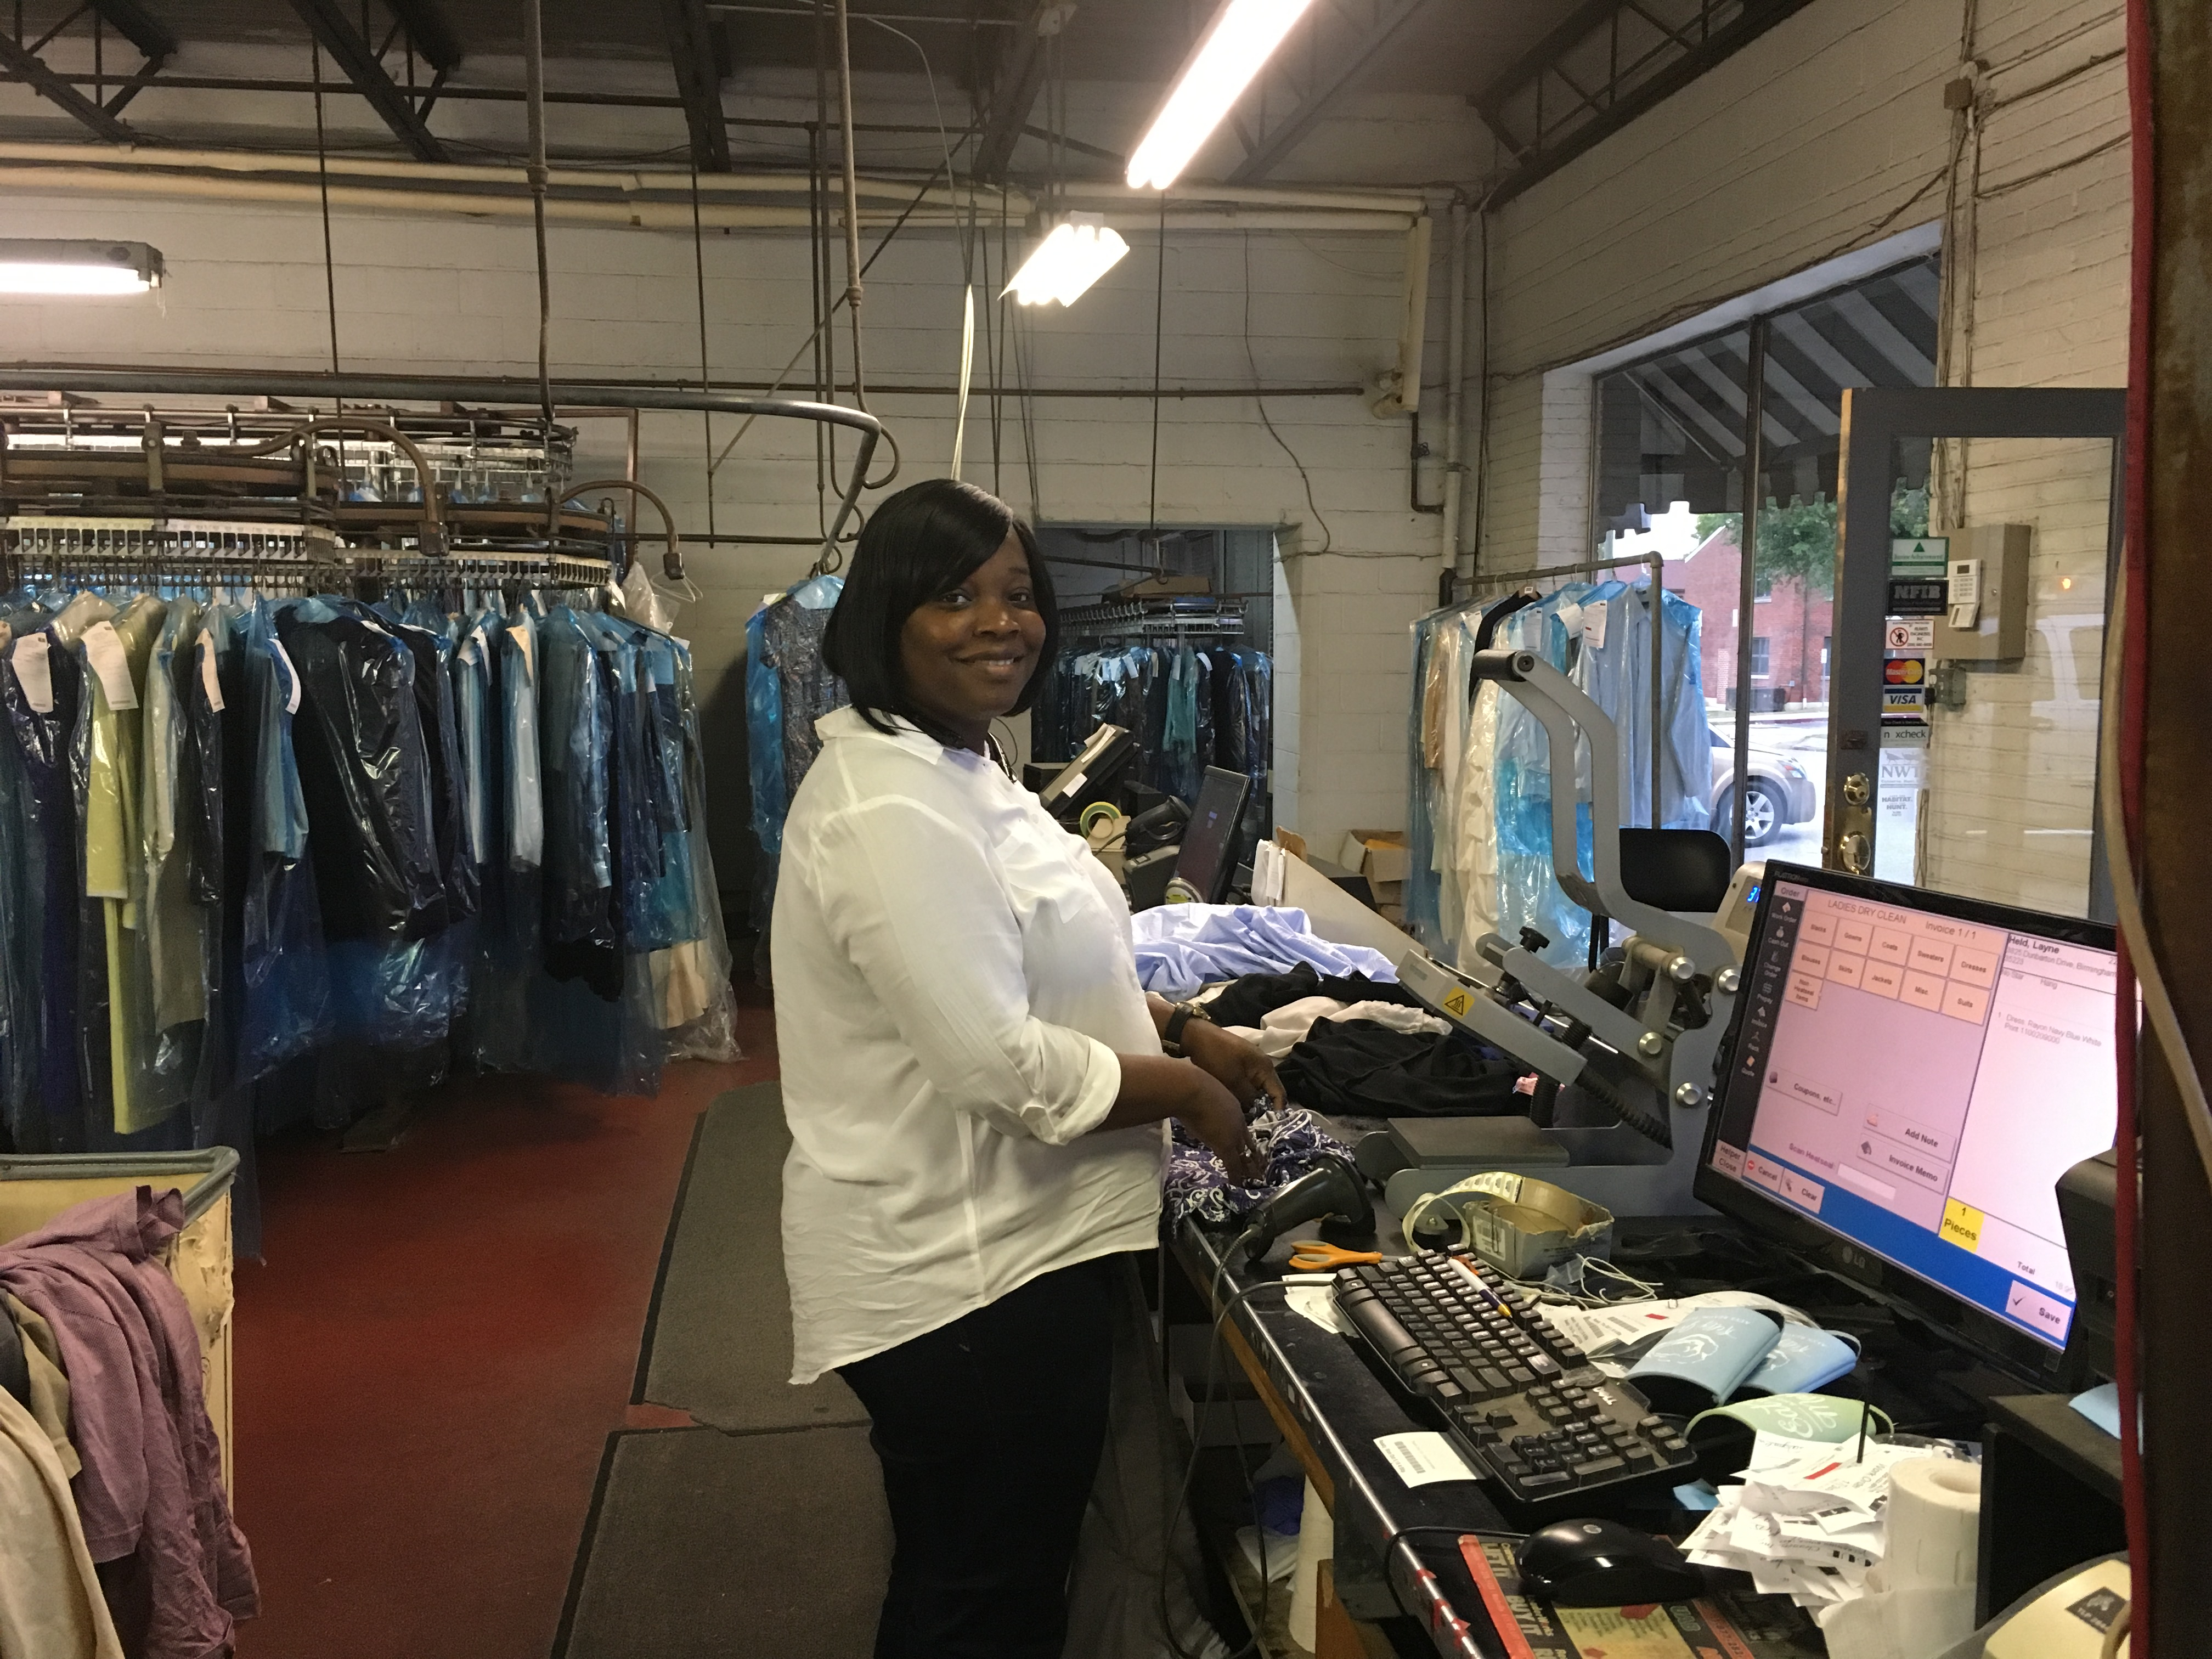 Vogue cleaners in birmingham al 35205 for Wedding dress cleaning birmingham